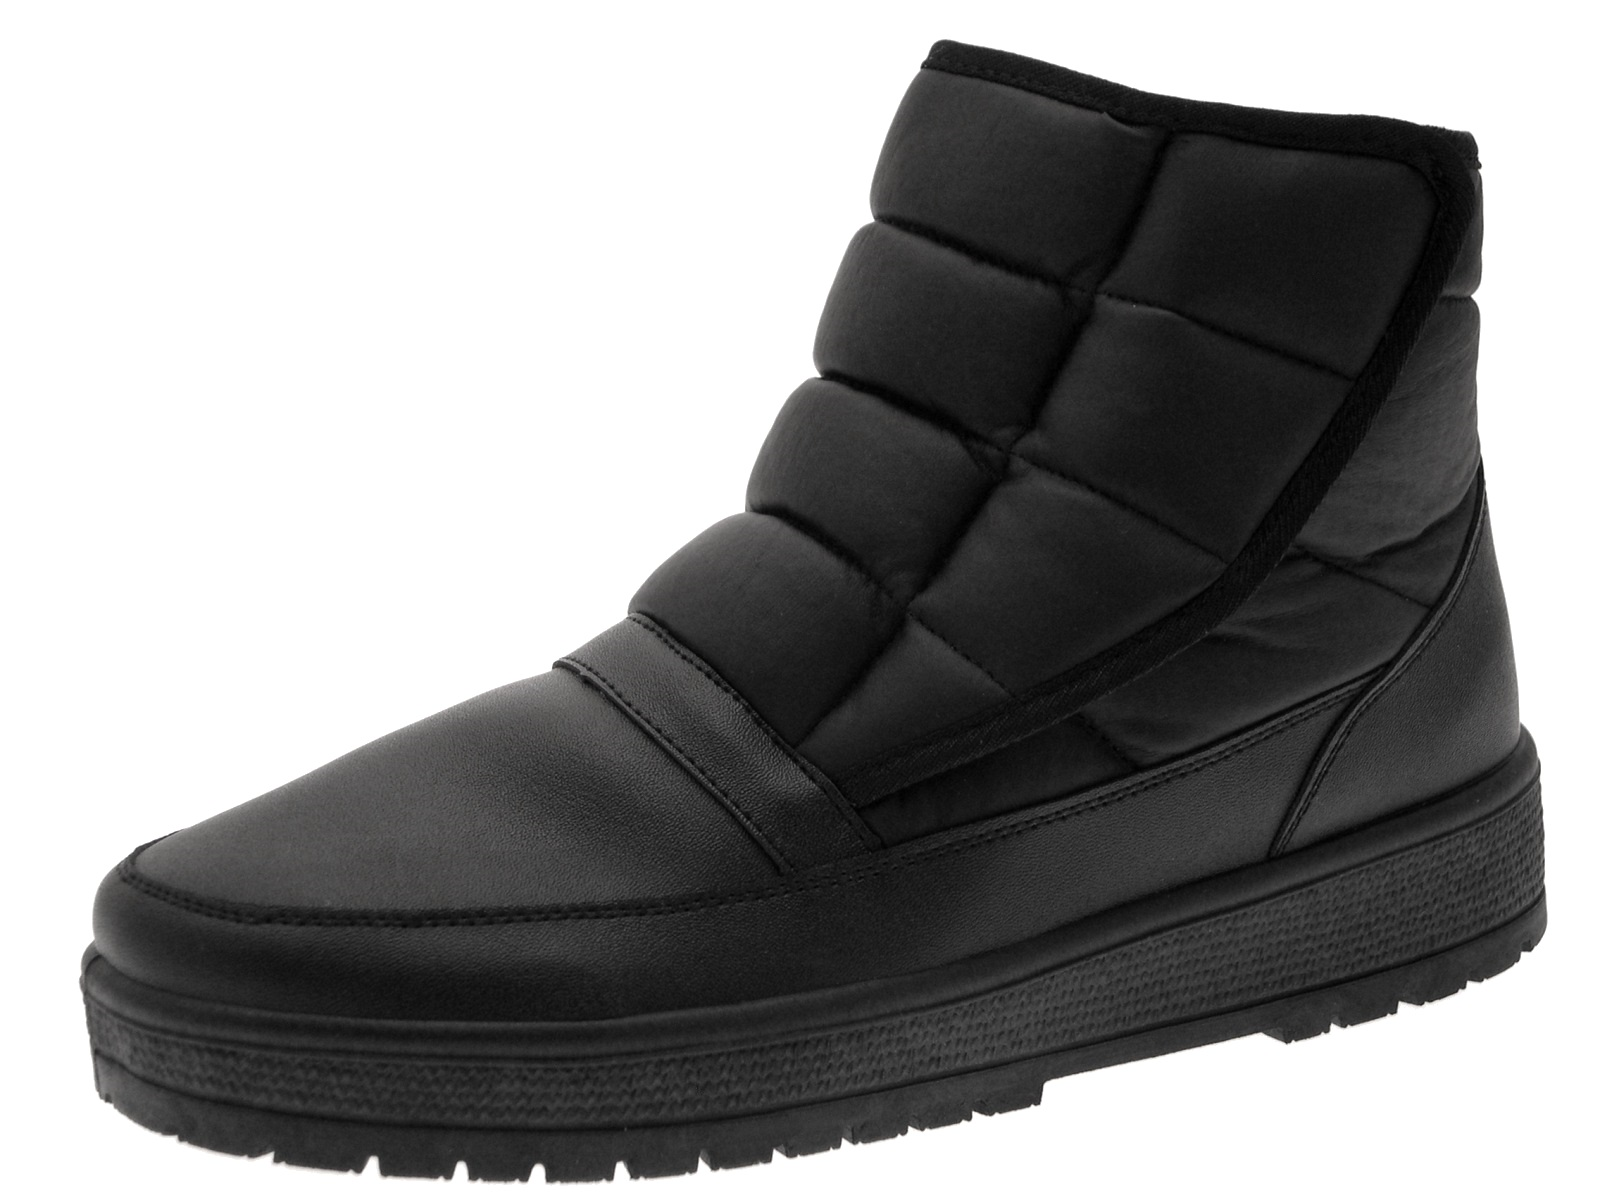 mens faux fur lined warm snow mucker work ankle boots